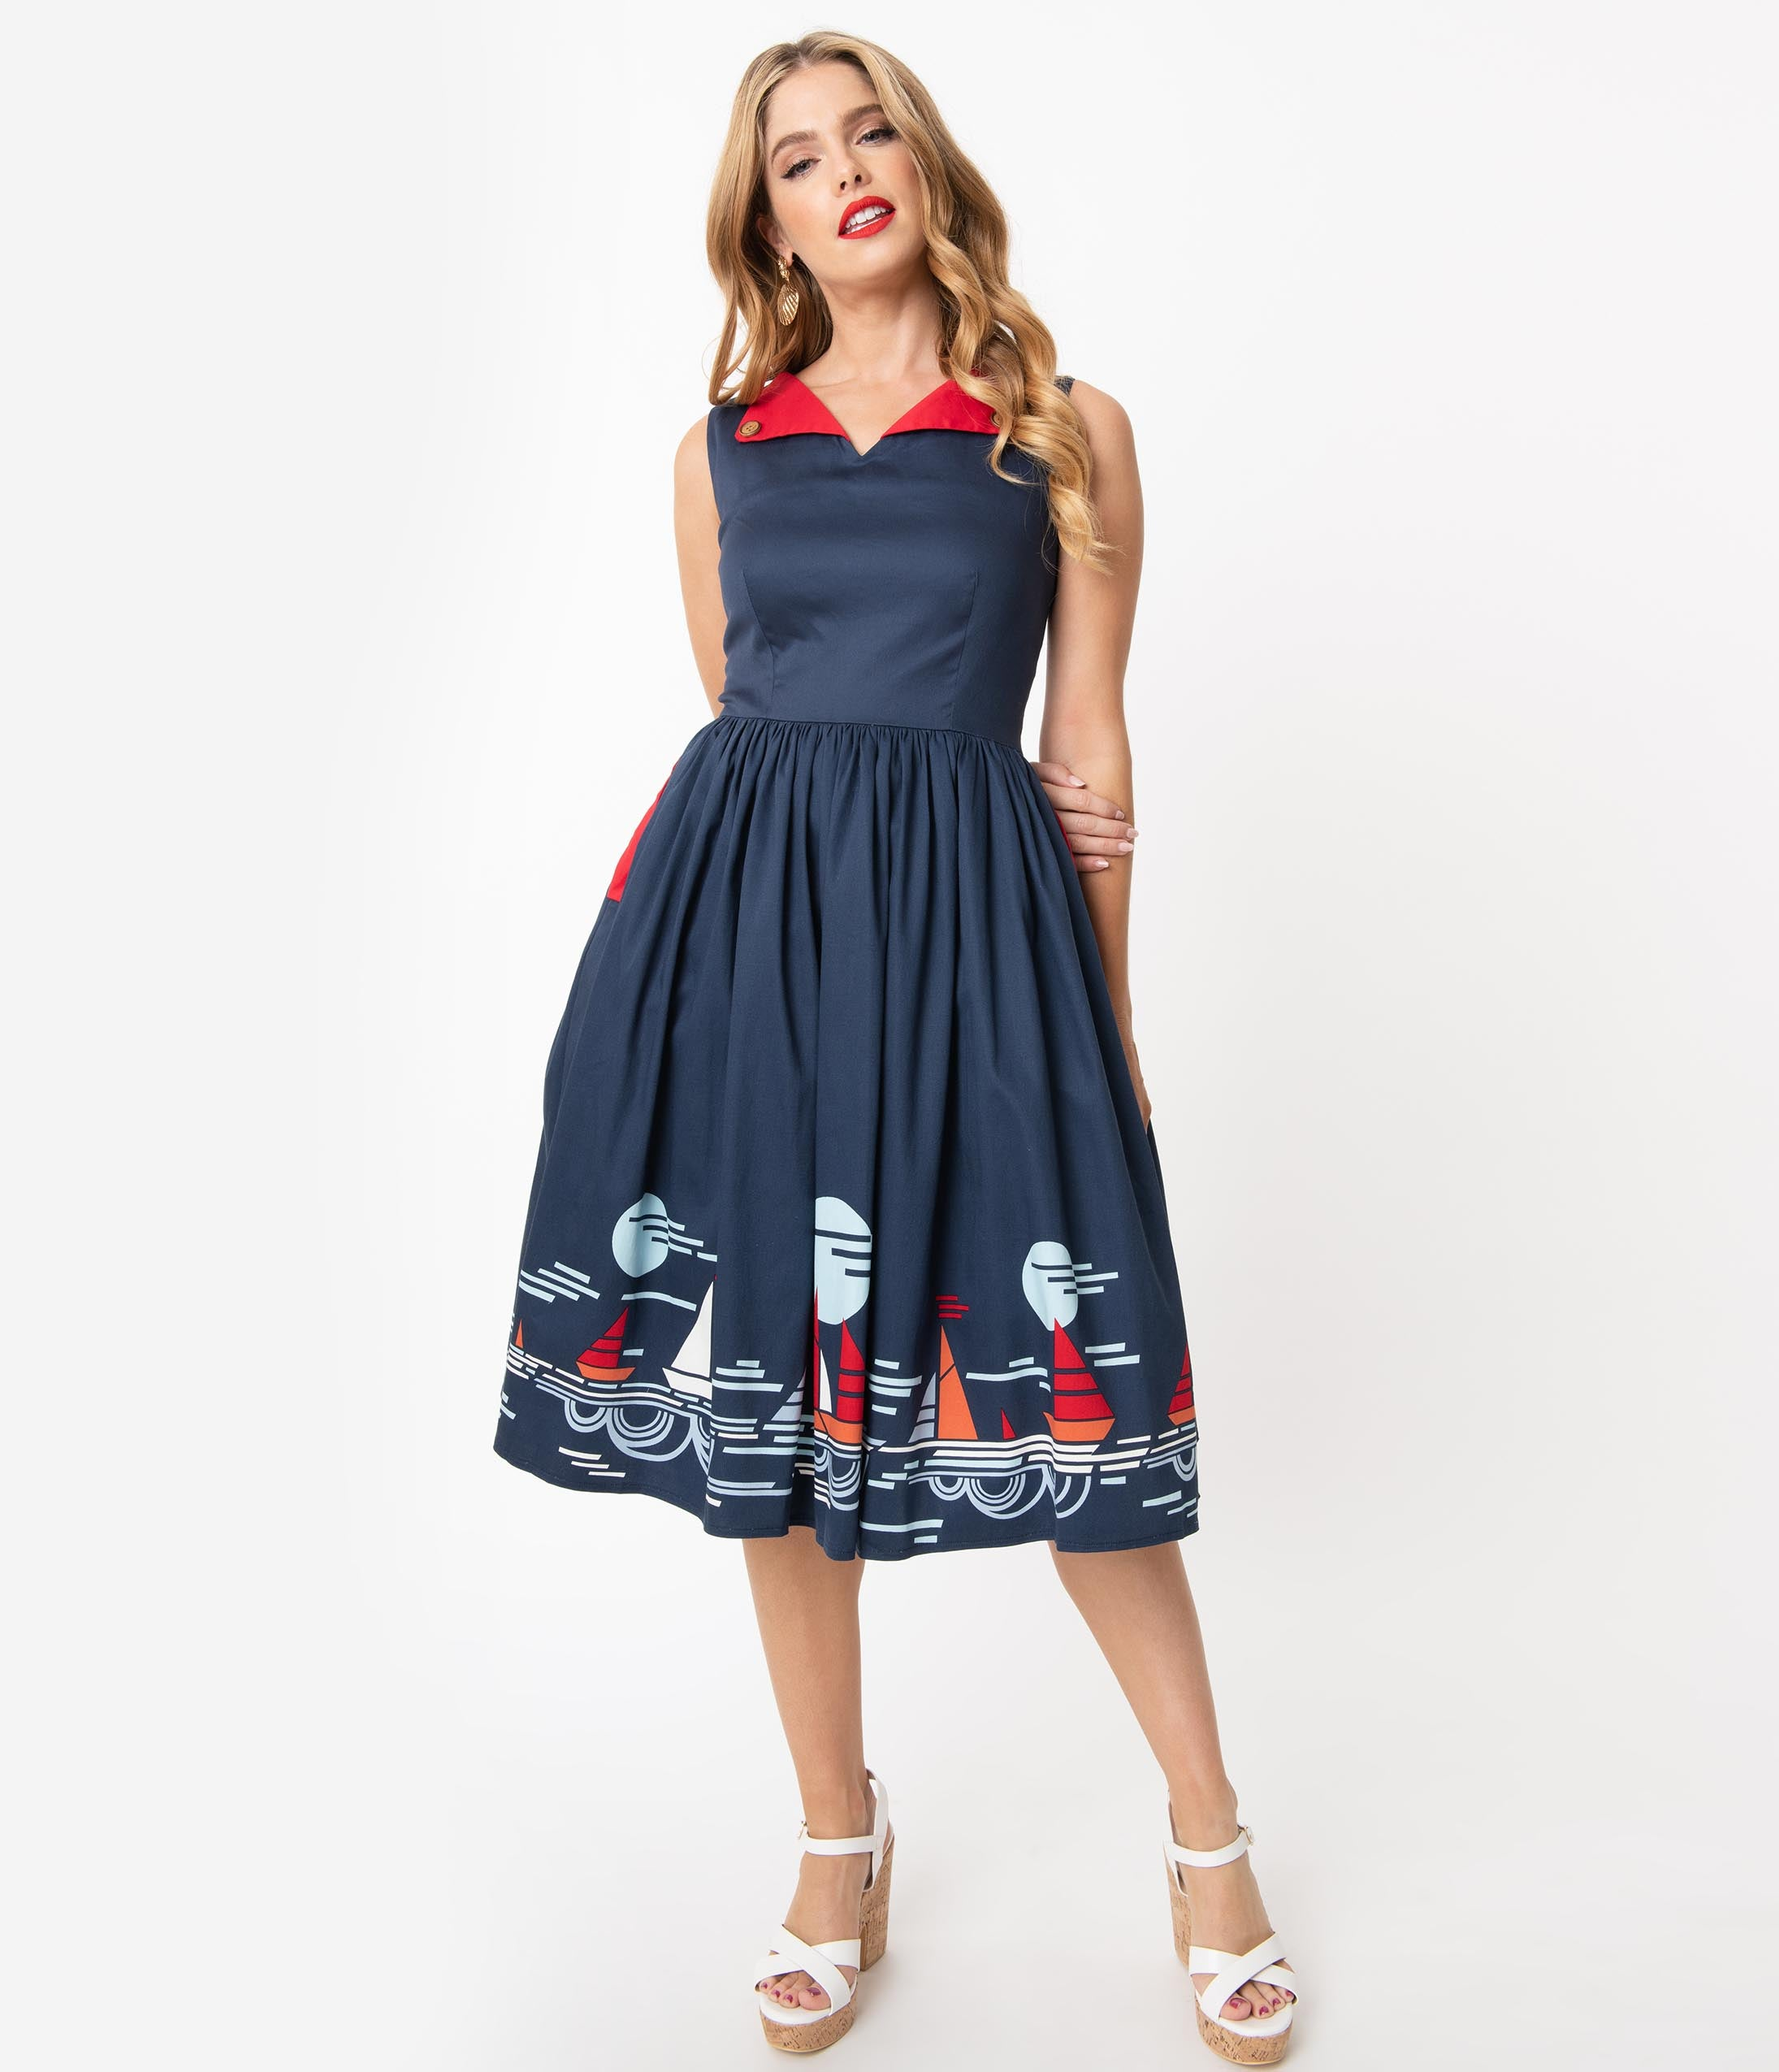 1950s Dresses, 50s Dresses | 1950s Style Dresses 1950S Style Navy Summer Sailing Scene Swing Dress $78.00 AT vintagedancer.com